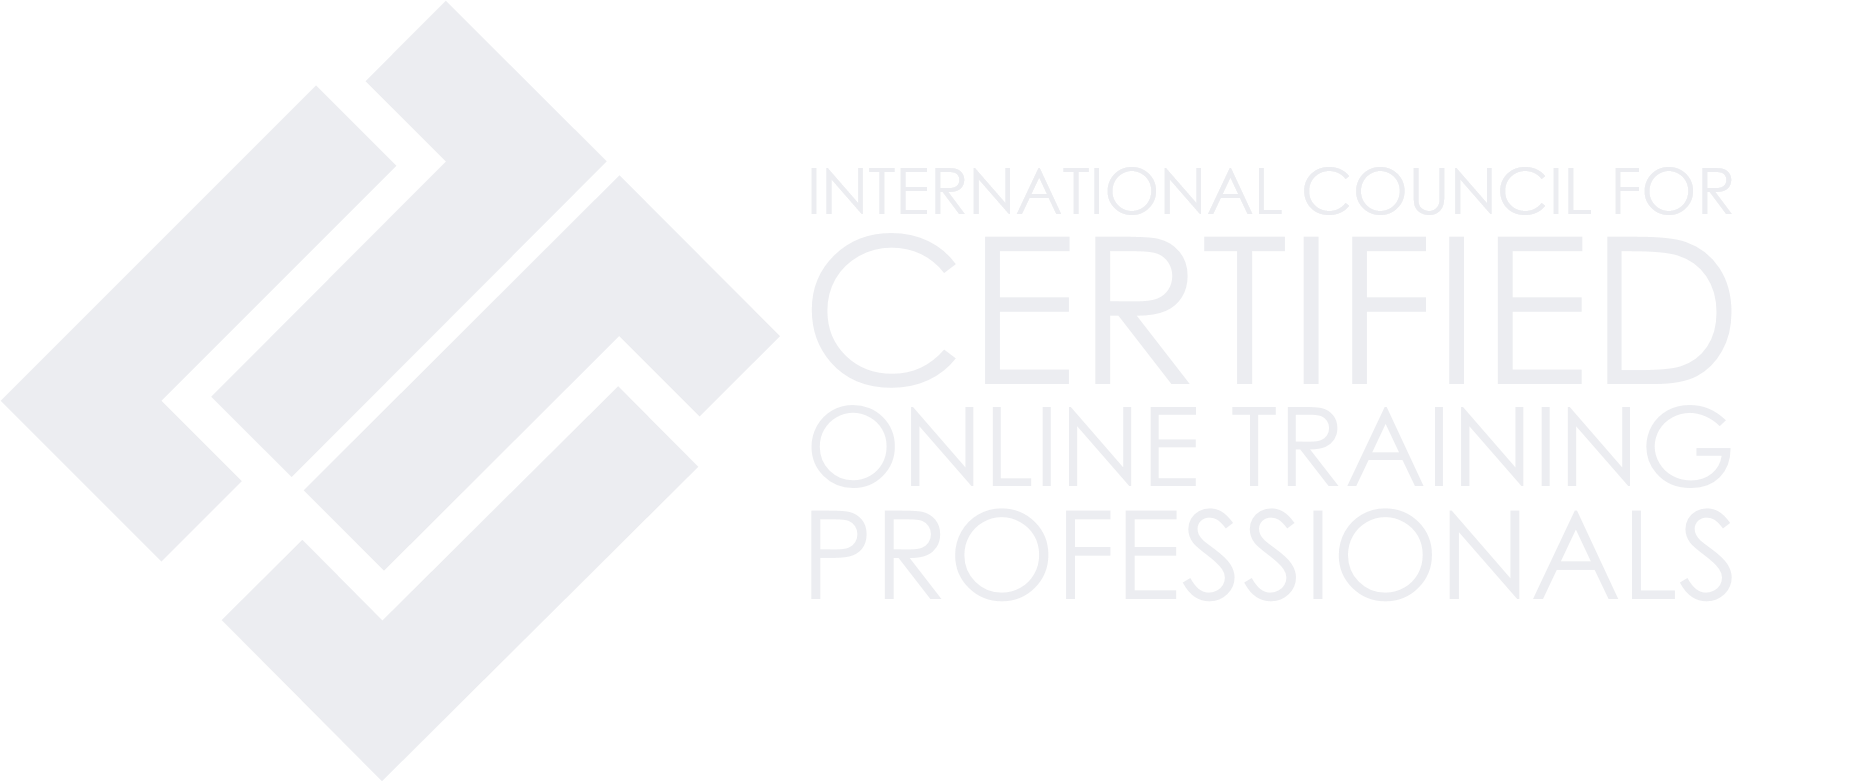 Online Training Professional Certification Enroll Now Certification